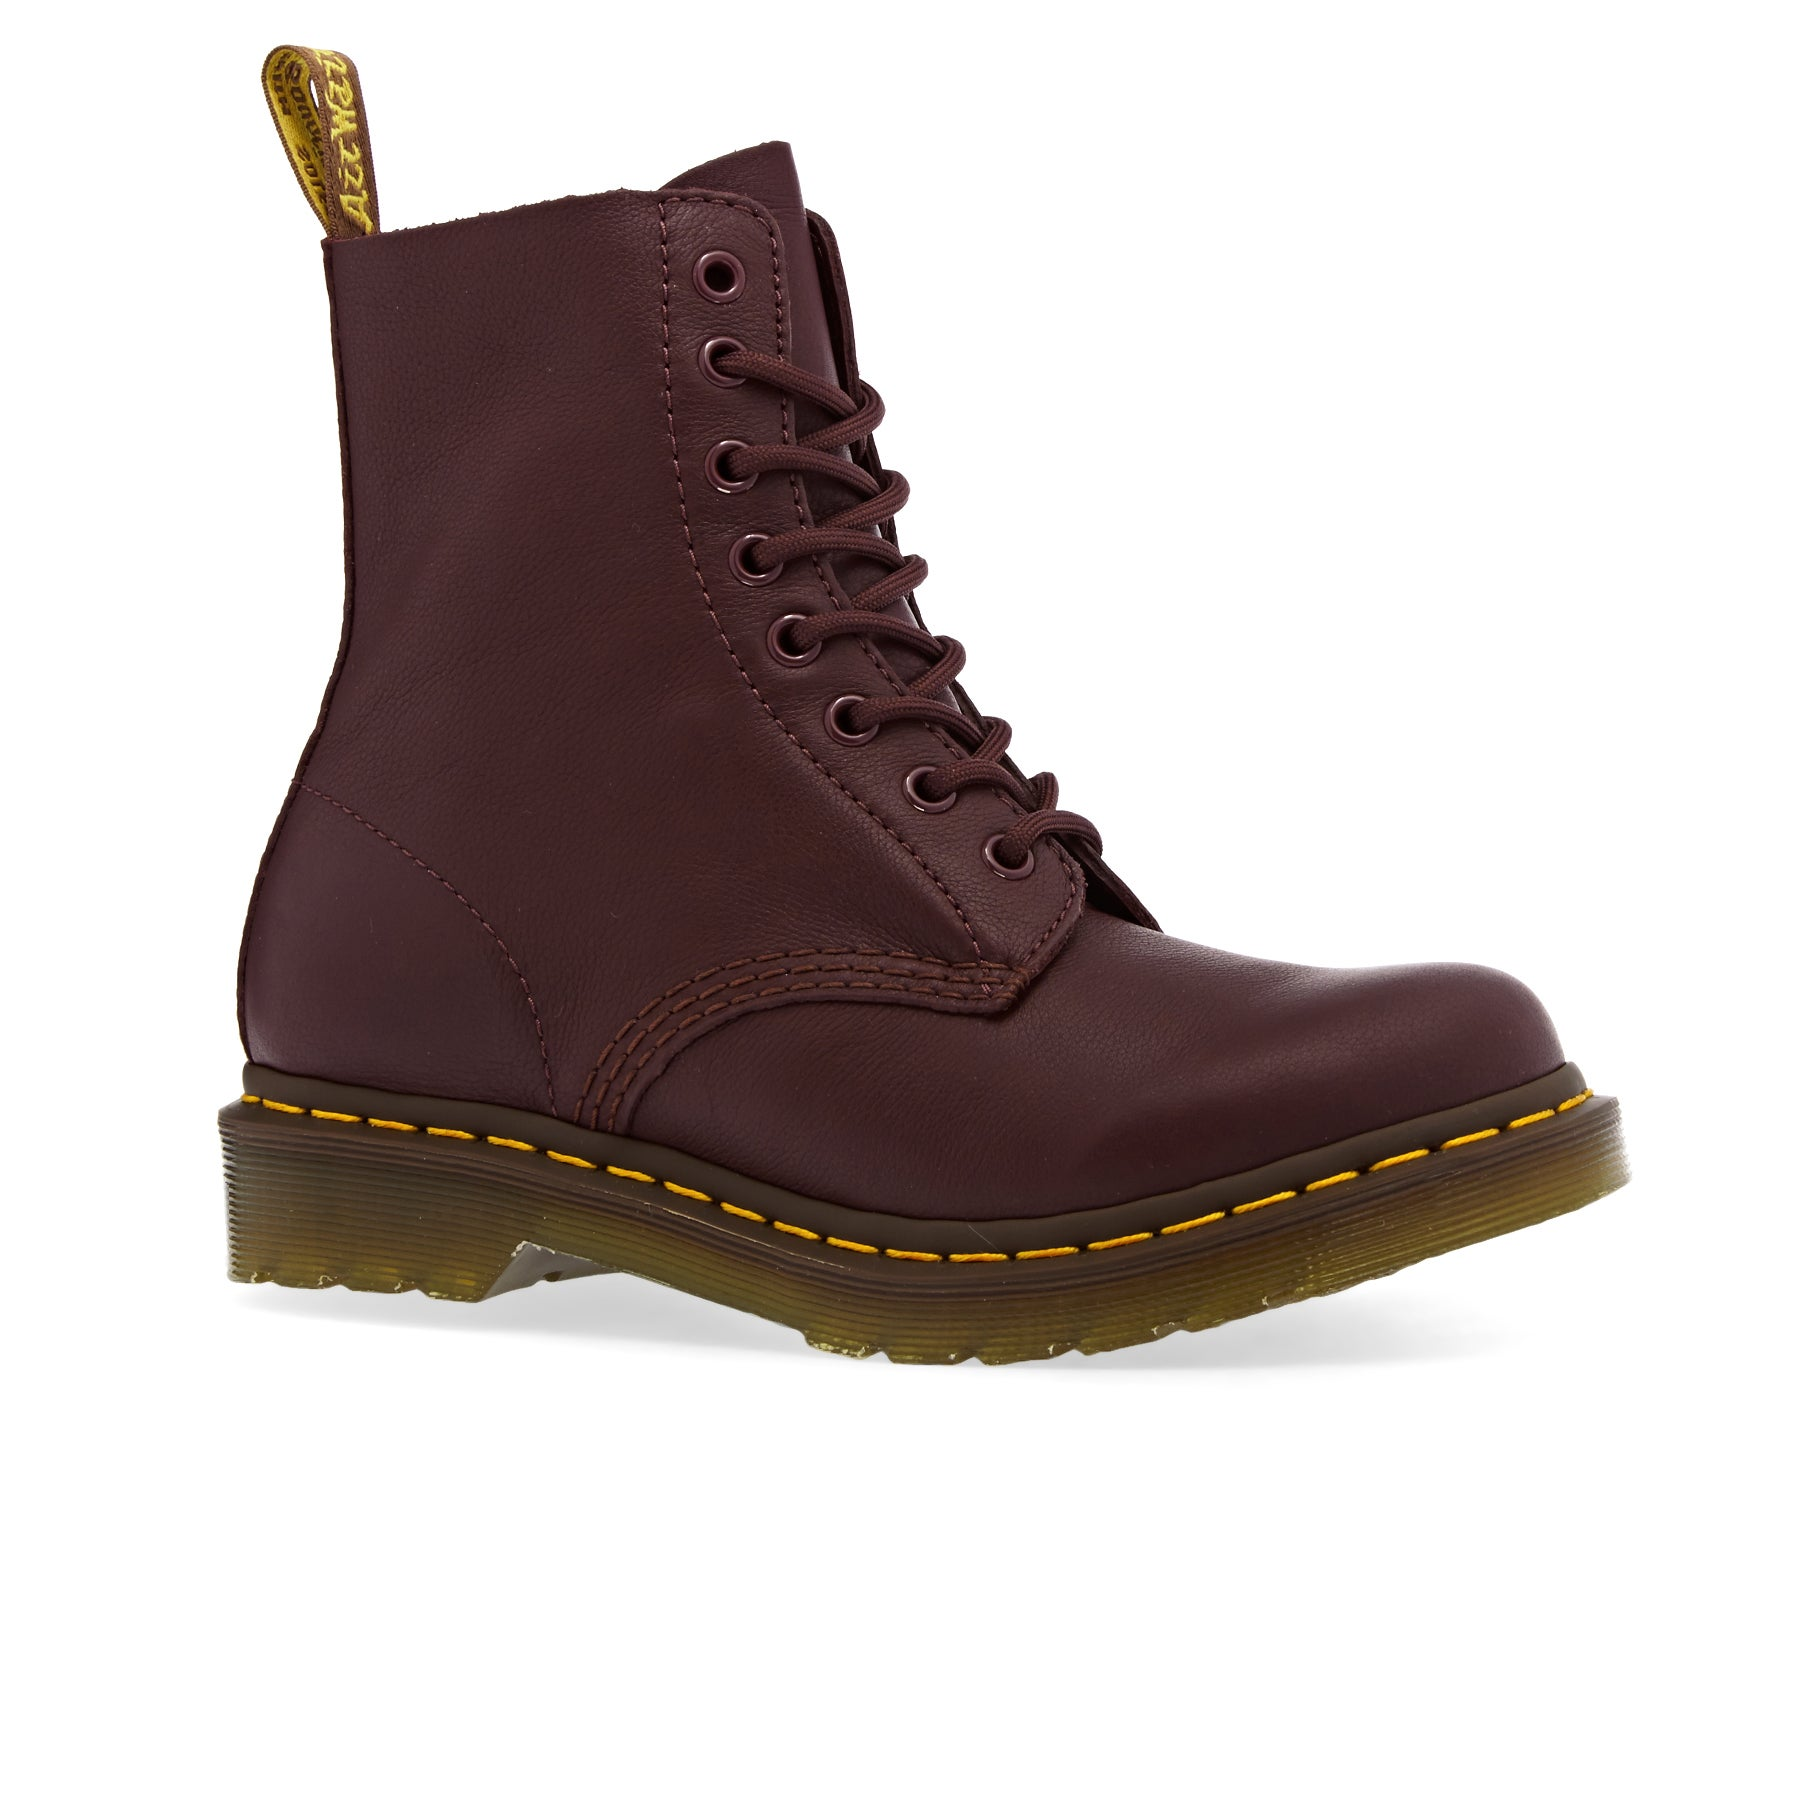 Bottes Femme Dr Martens 1460 Pascal - Cherry Red Virginia